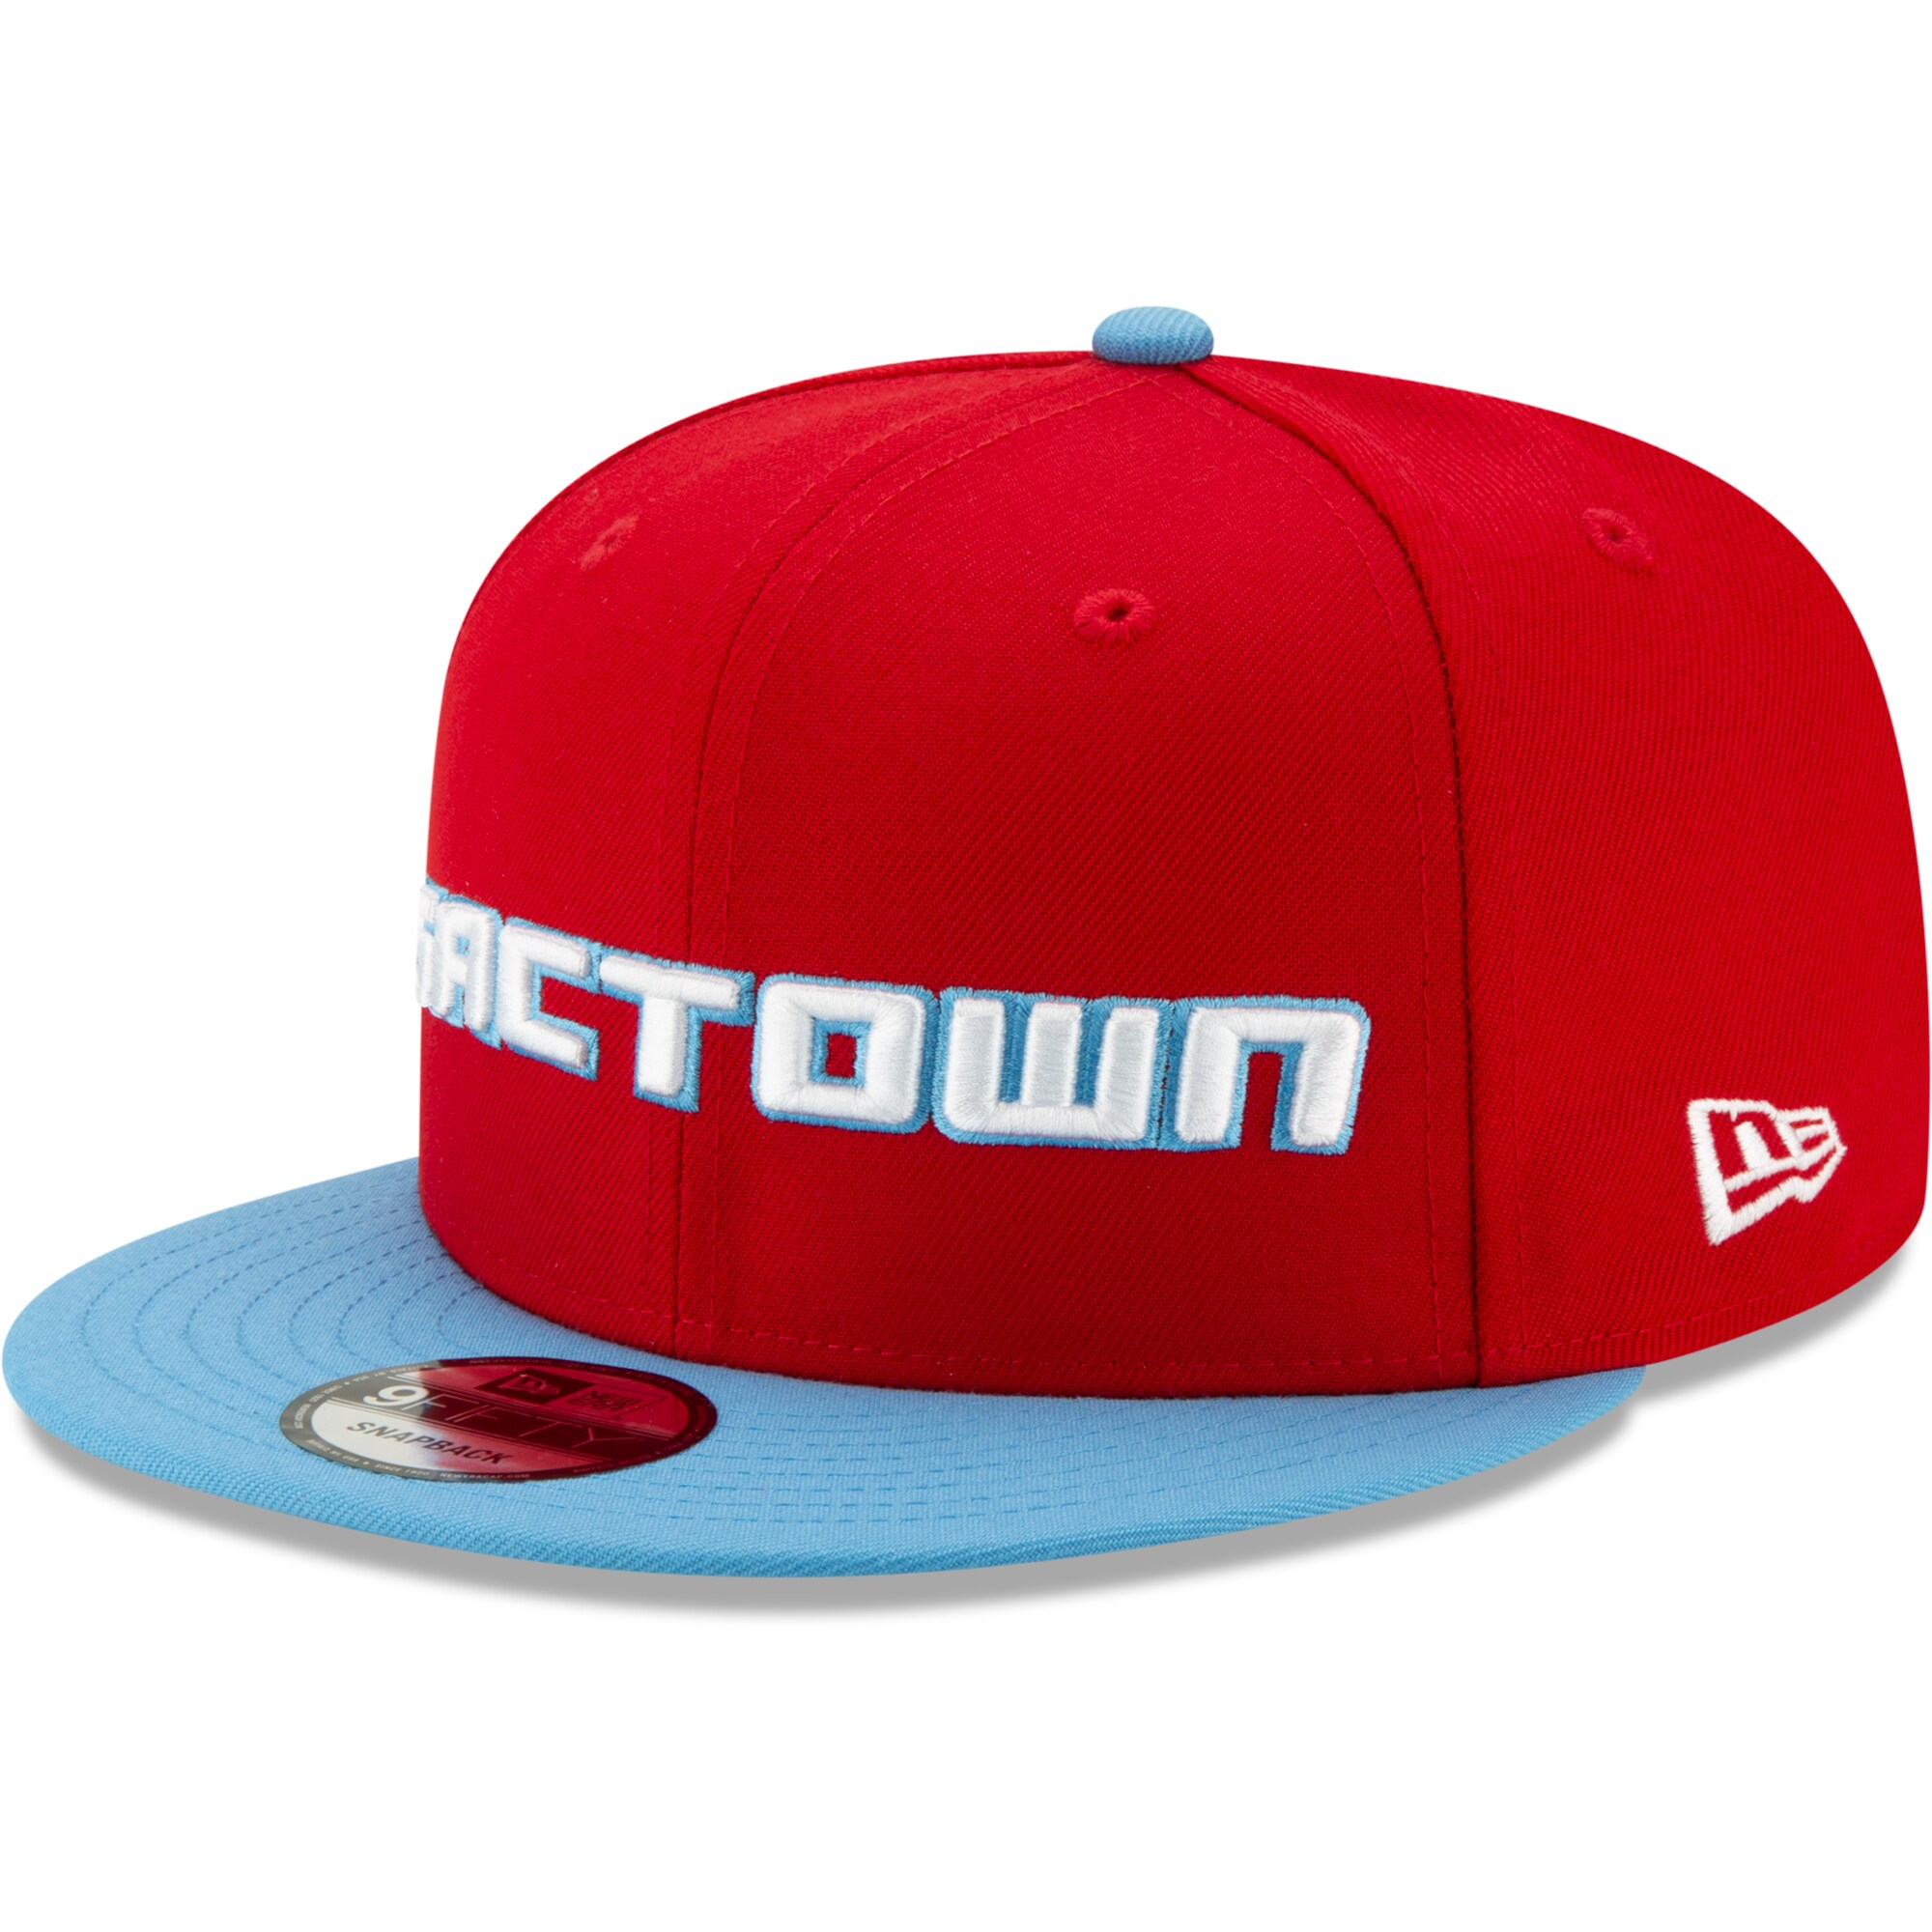 Sacramento Kings New Era 2019/20 City Edition On Court 9FIFTY Snapback Adjustable Hat - Red/Light Blue